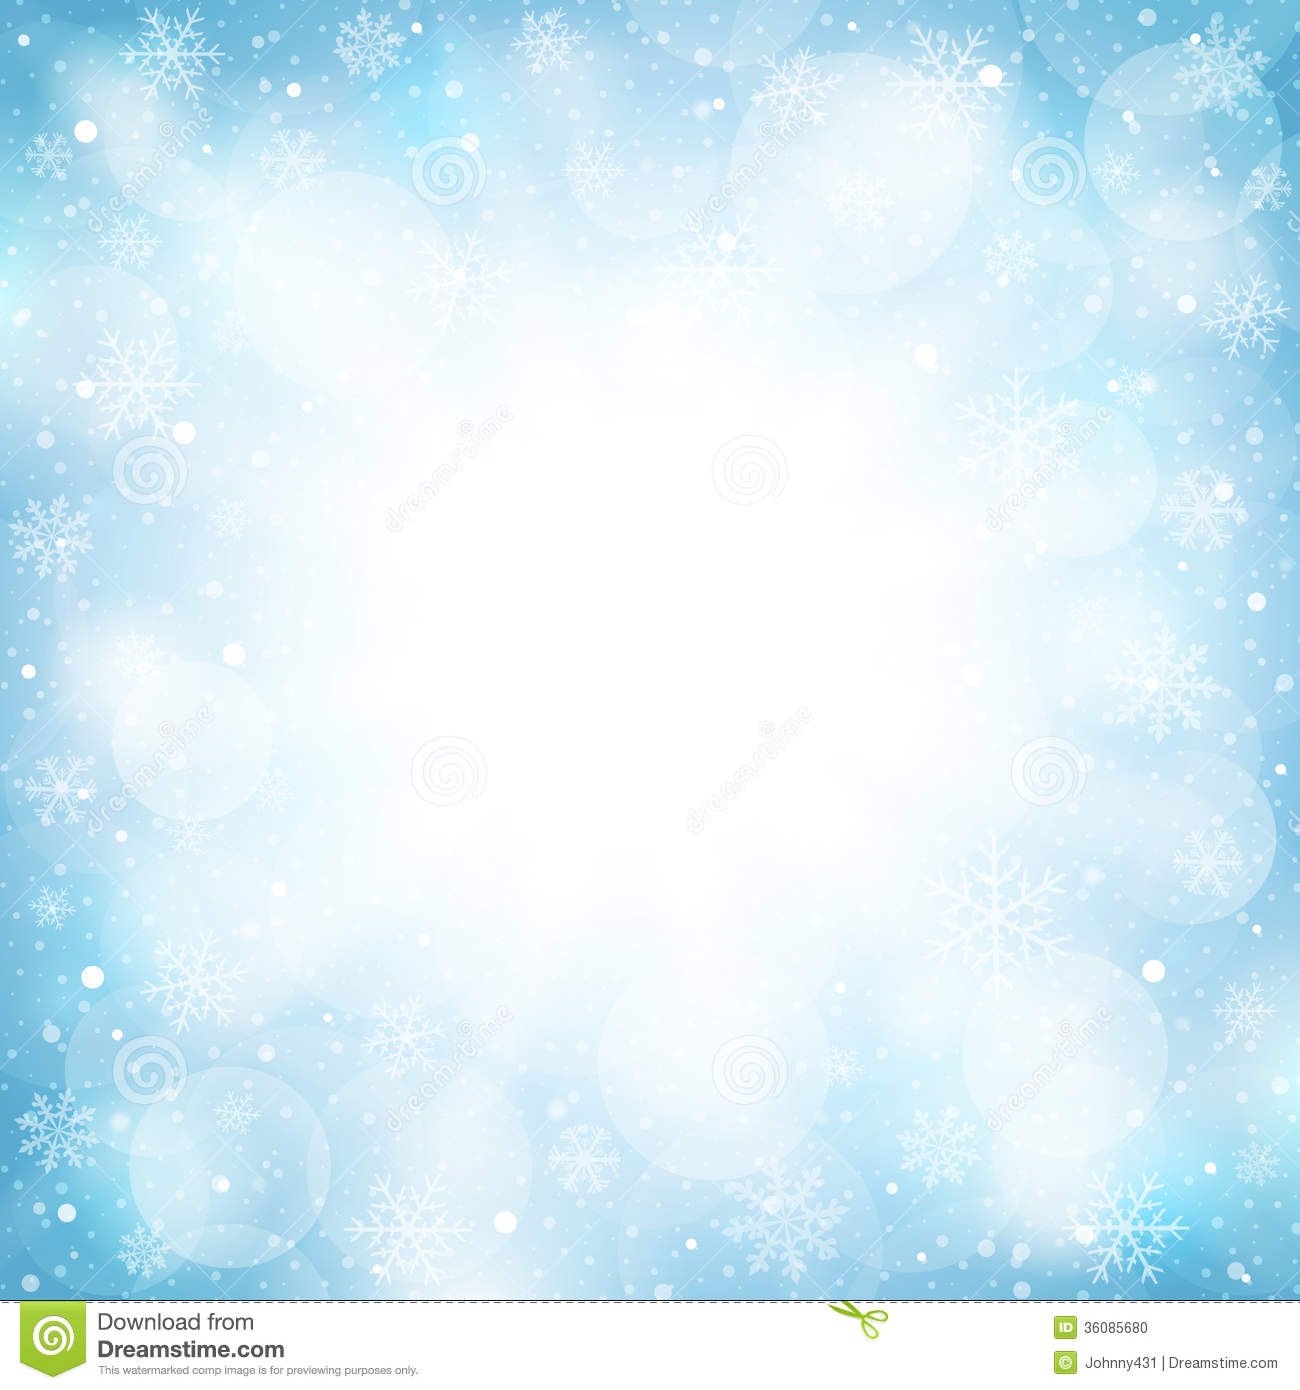 Free Snow Falling Wallpaper Ice Background Stock Photo Image 36085680